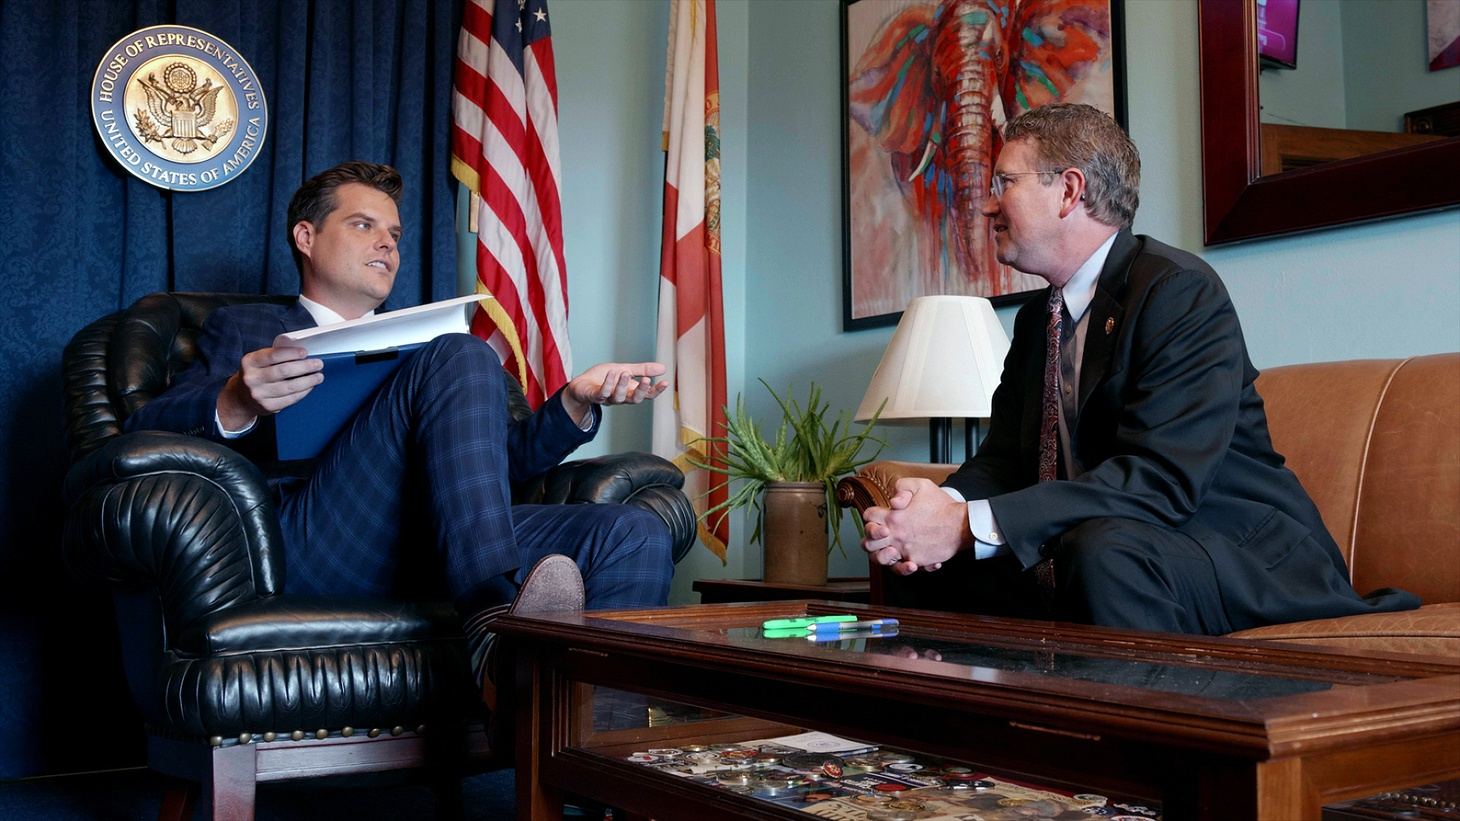 Rep. Matt Gaetz (R-FL), left, and Rep Thomas Massie (R-KY), right, talking about fundraising in Gaetz's office.